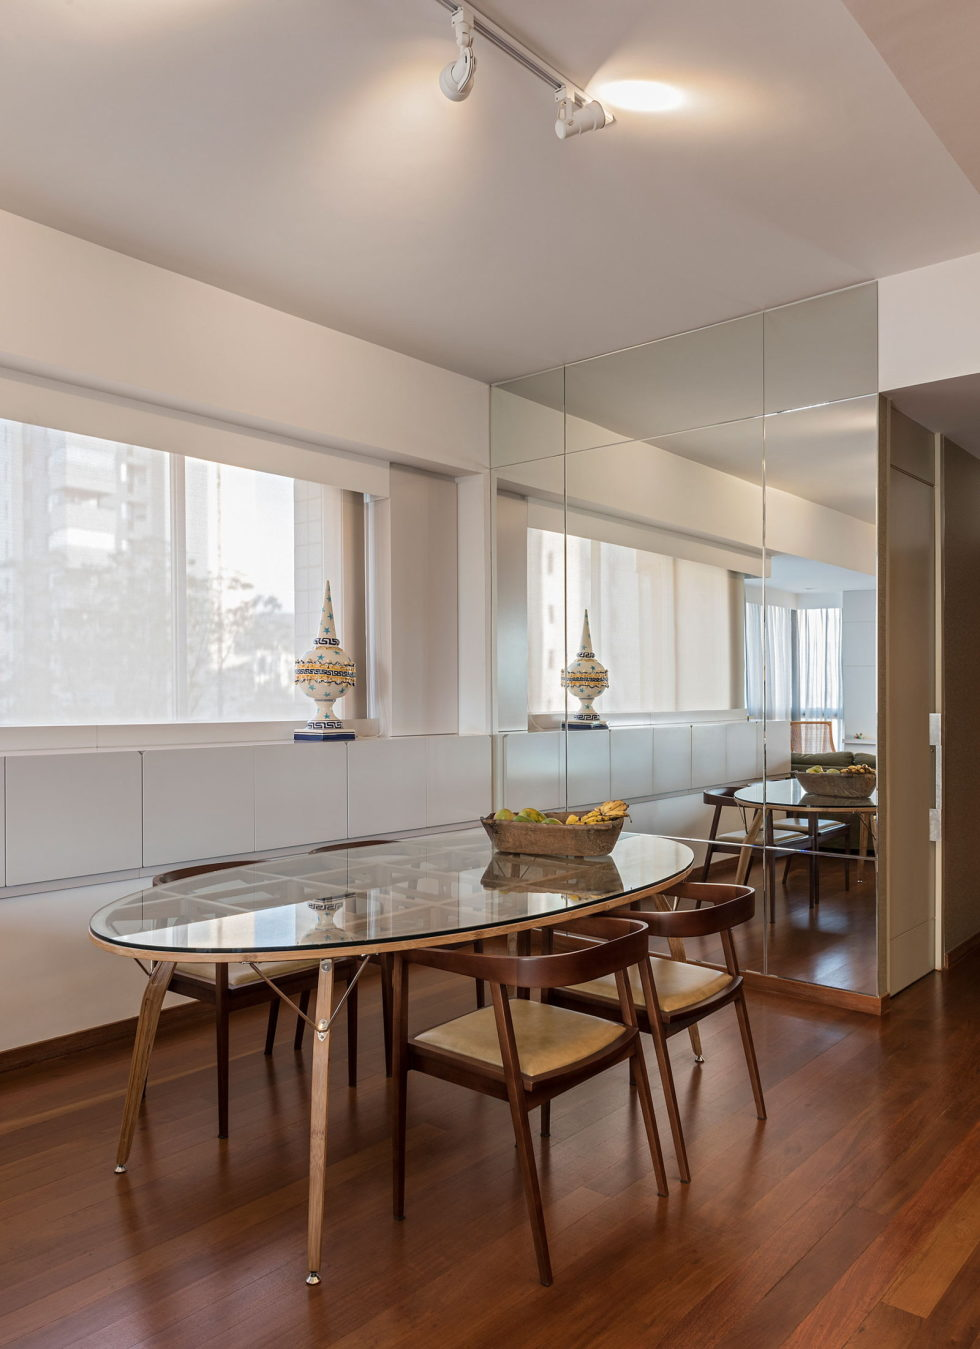 Top House Penthouse Upon The Project Of Celeno Ivanovo In Brazil 9